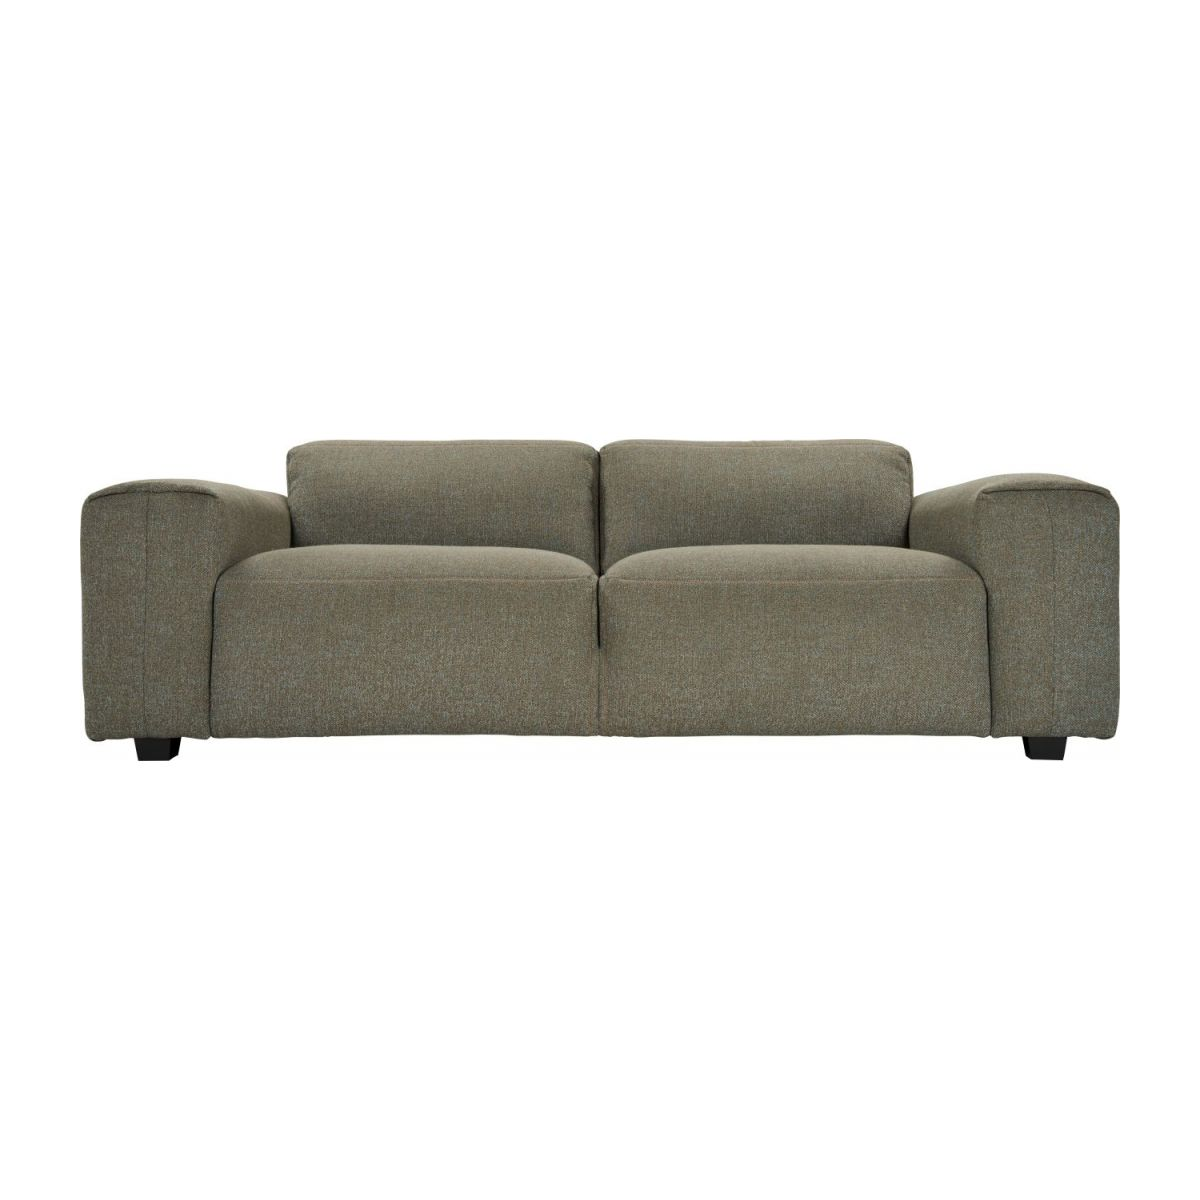 3 seater sofa in Lecce fabric, slade grey n°2